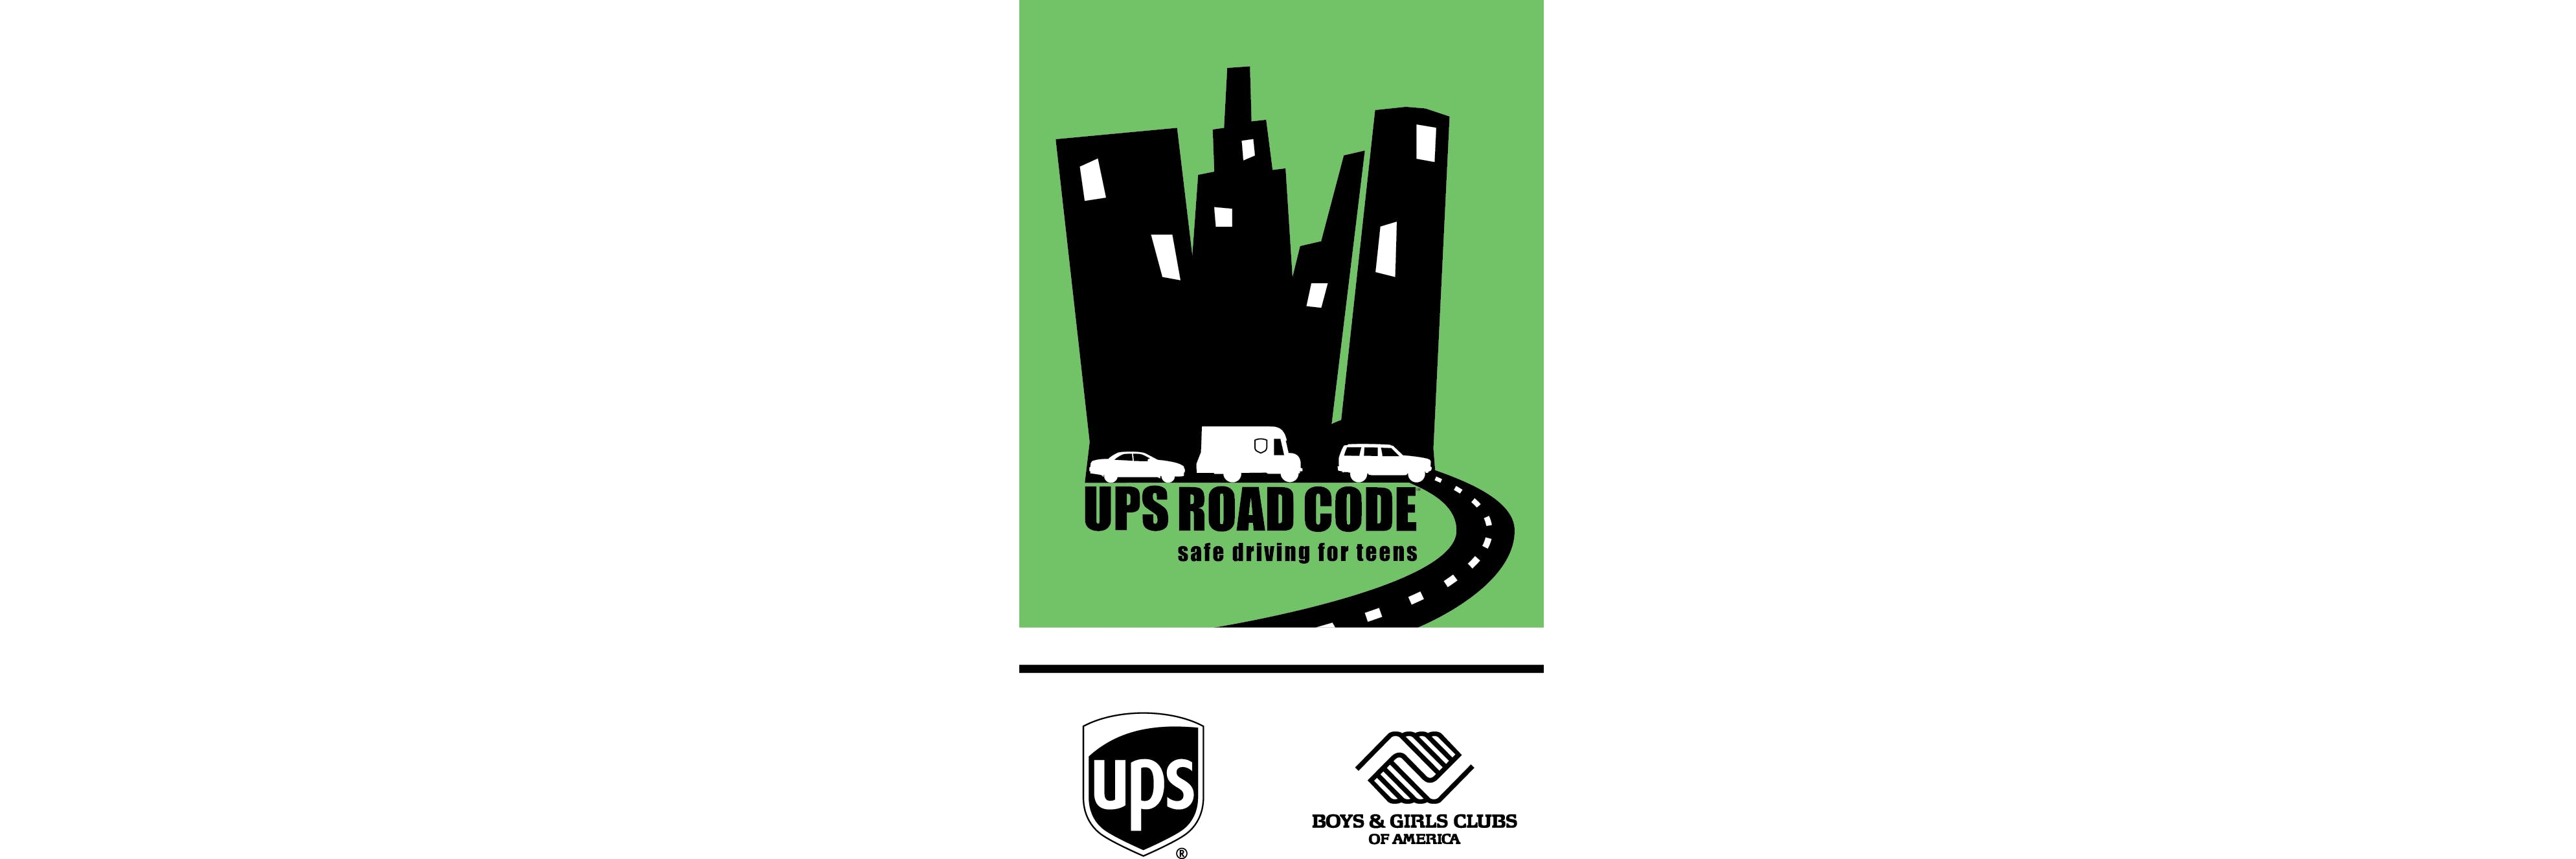 UPS Road Code for Teen Safe Driving at Park Middle School, Lincoln